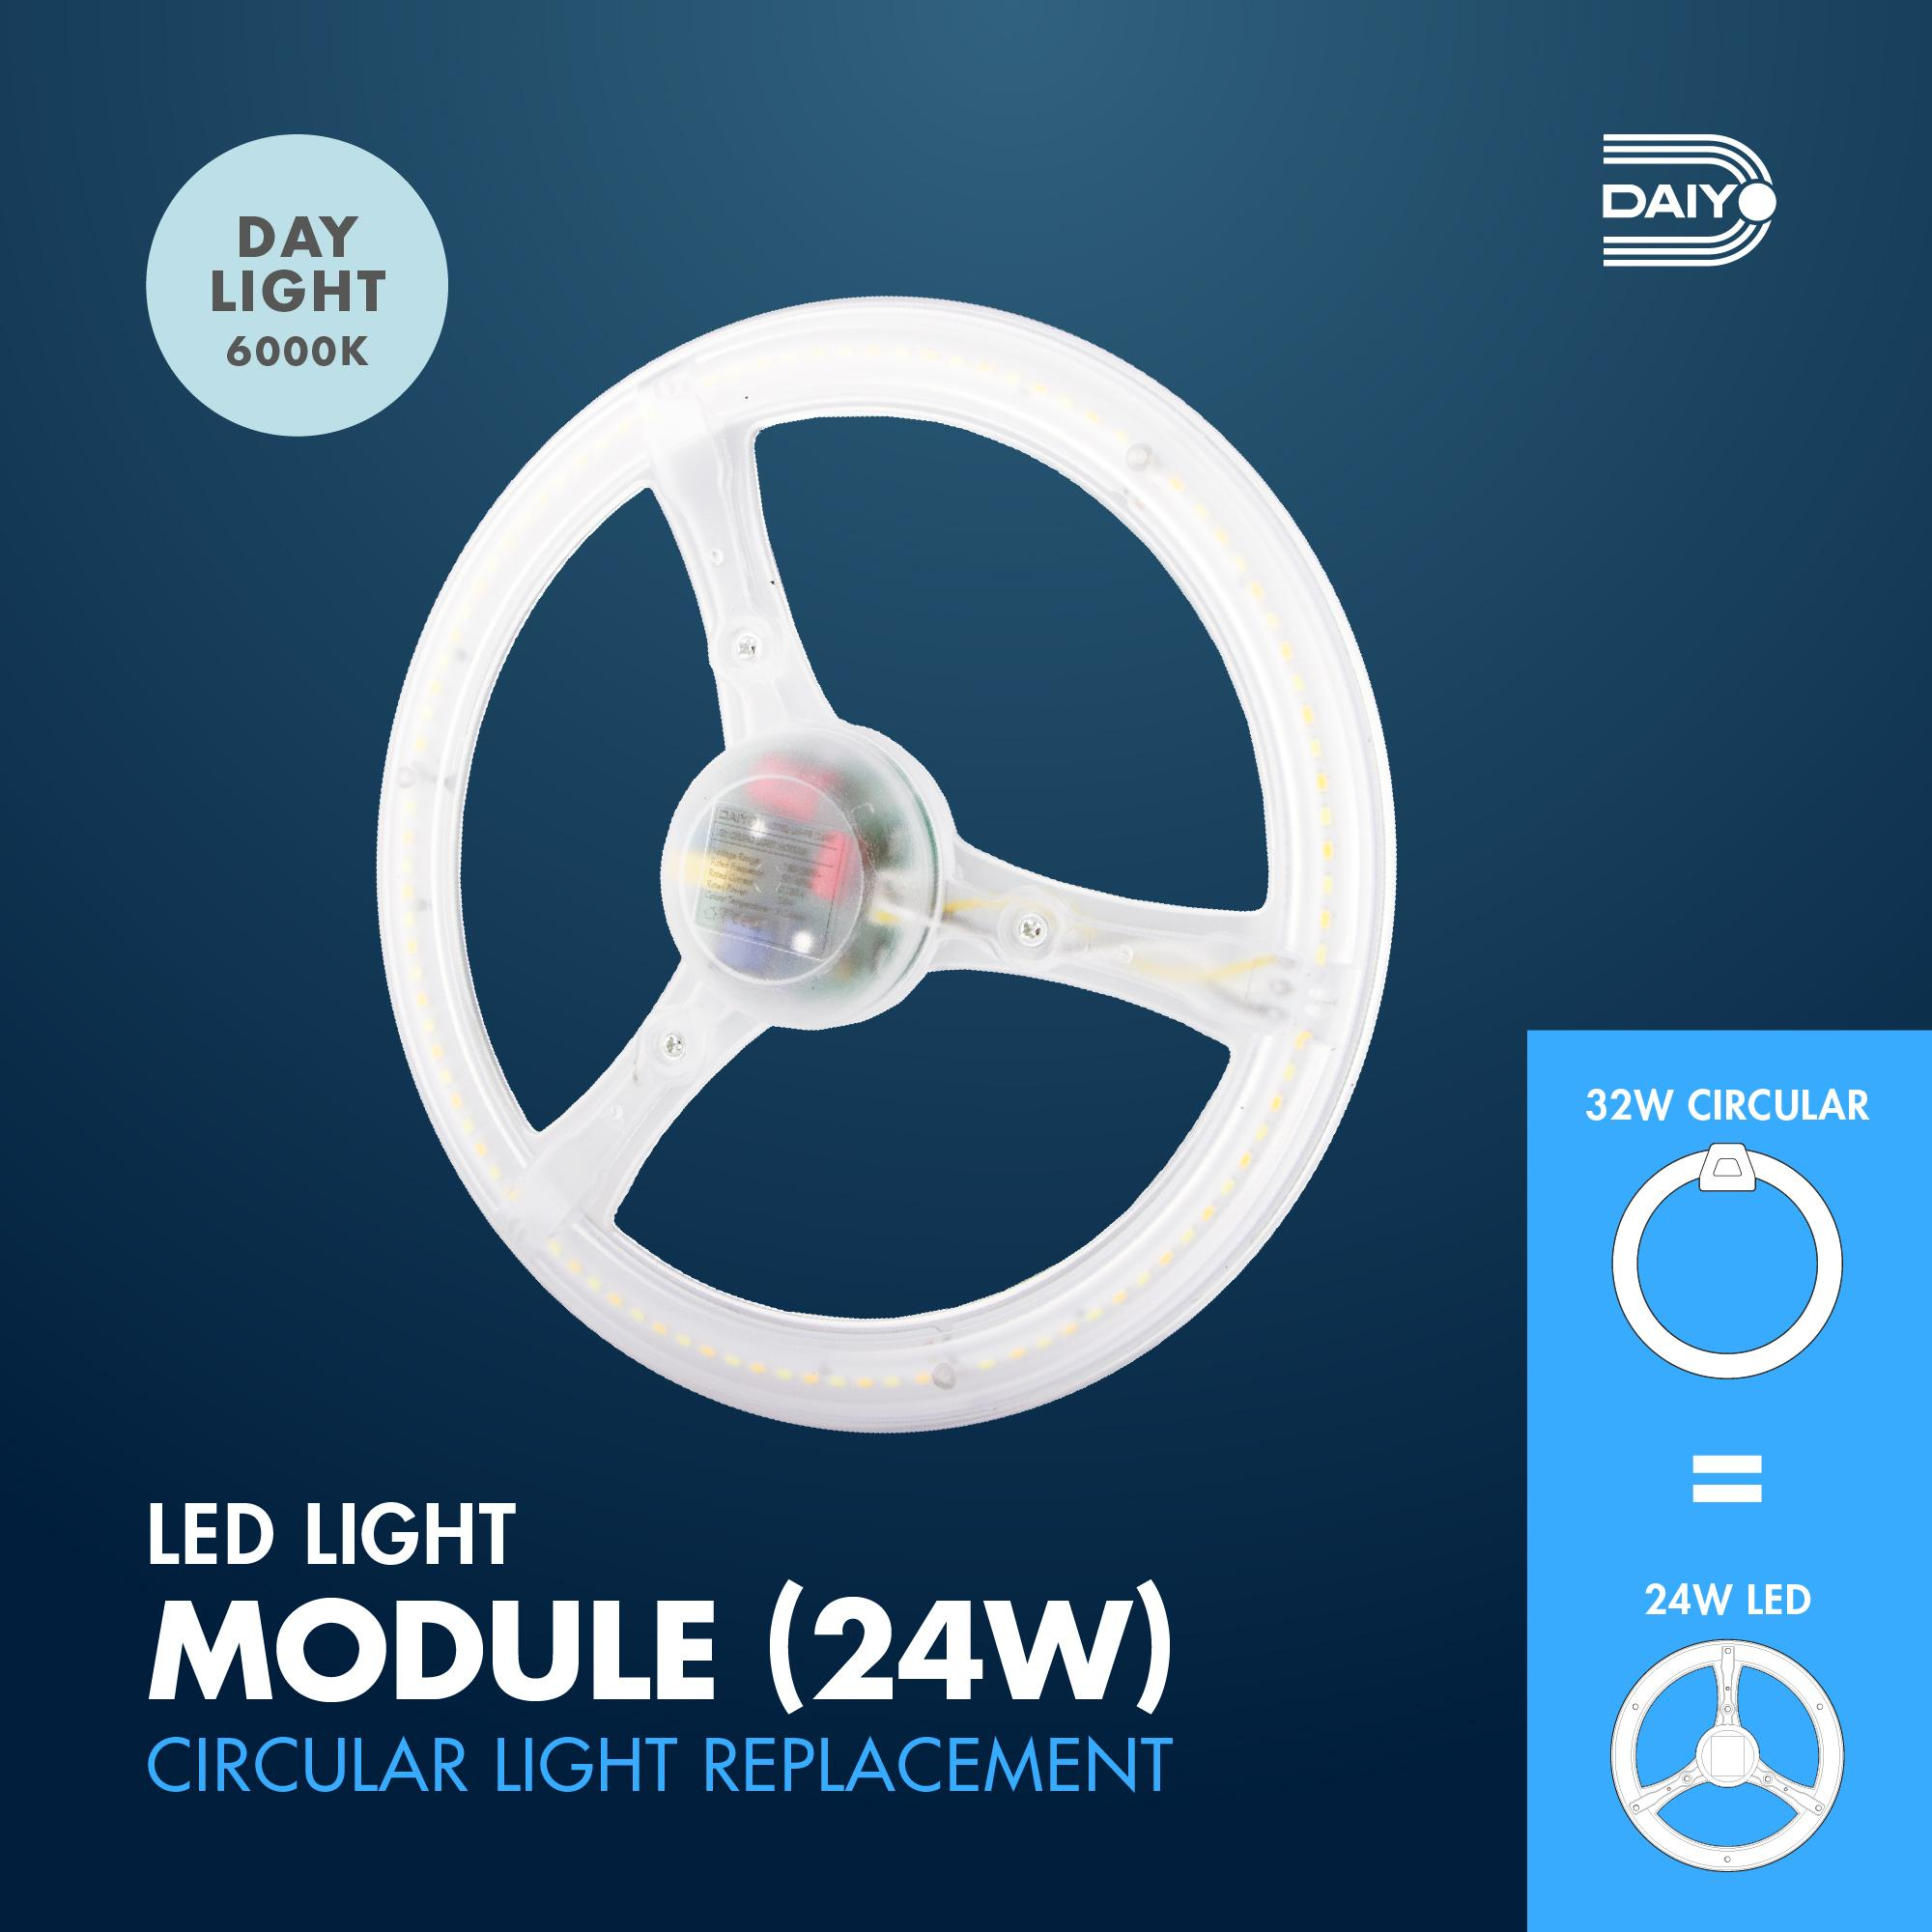 24 W LED Circular Replacement Magnetic Base Ceiling Panel (Day Light)